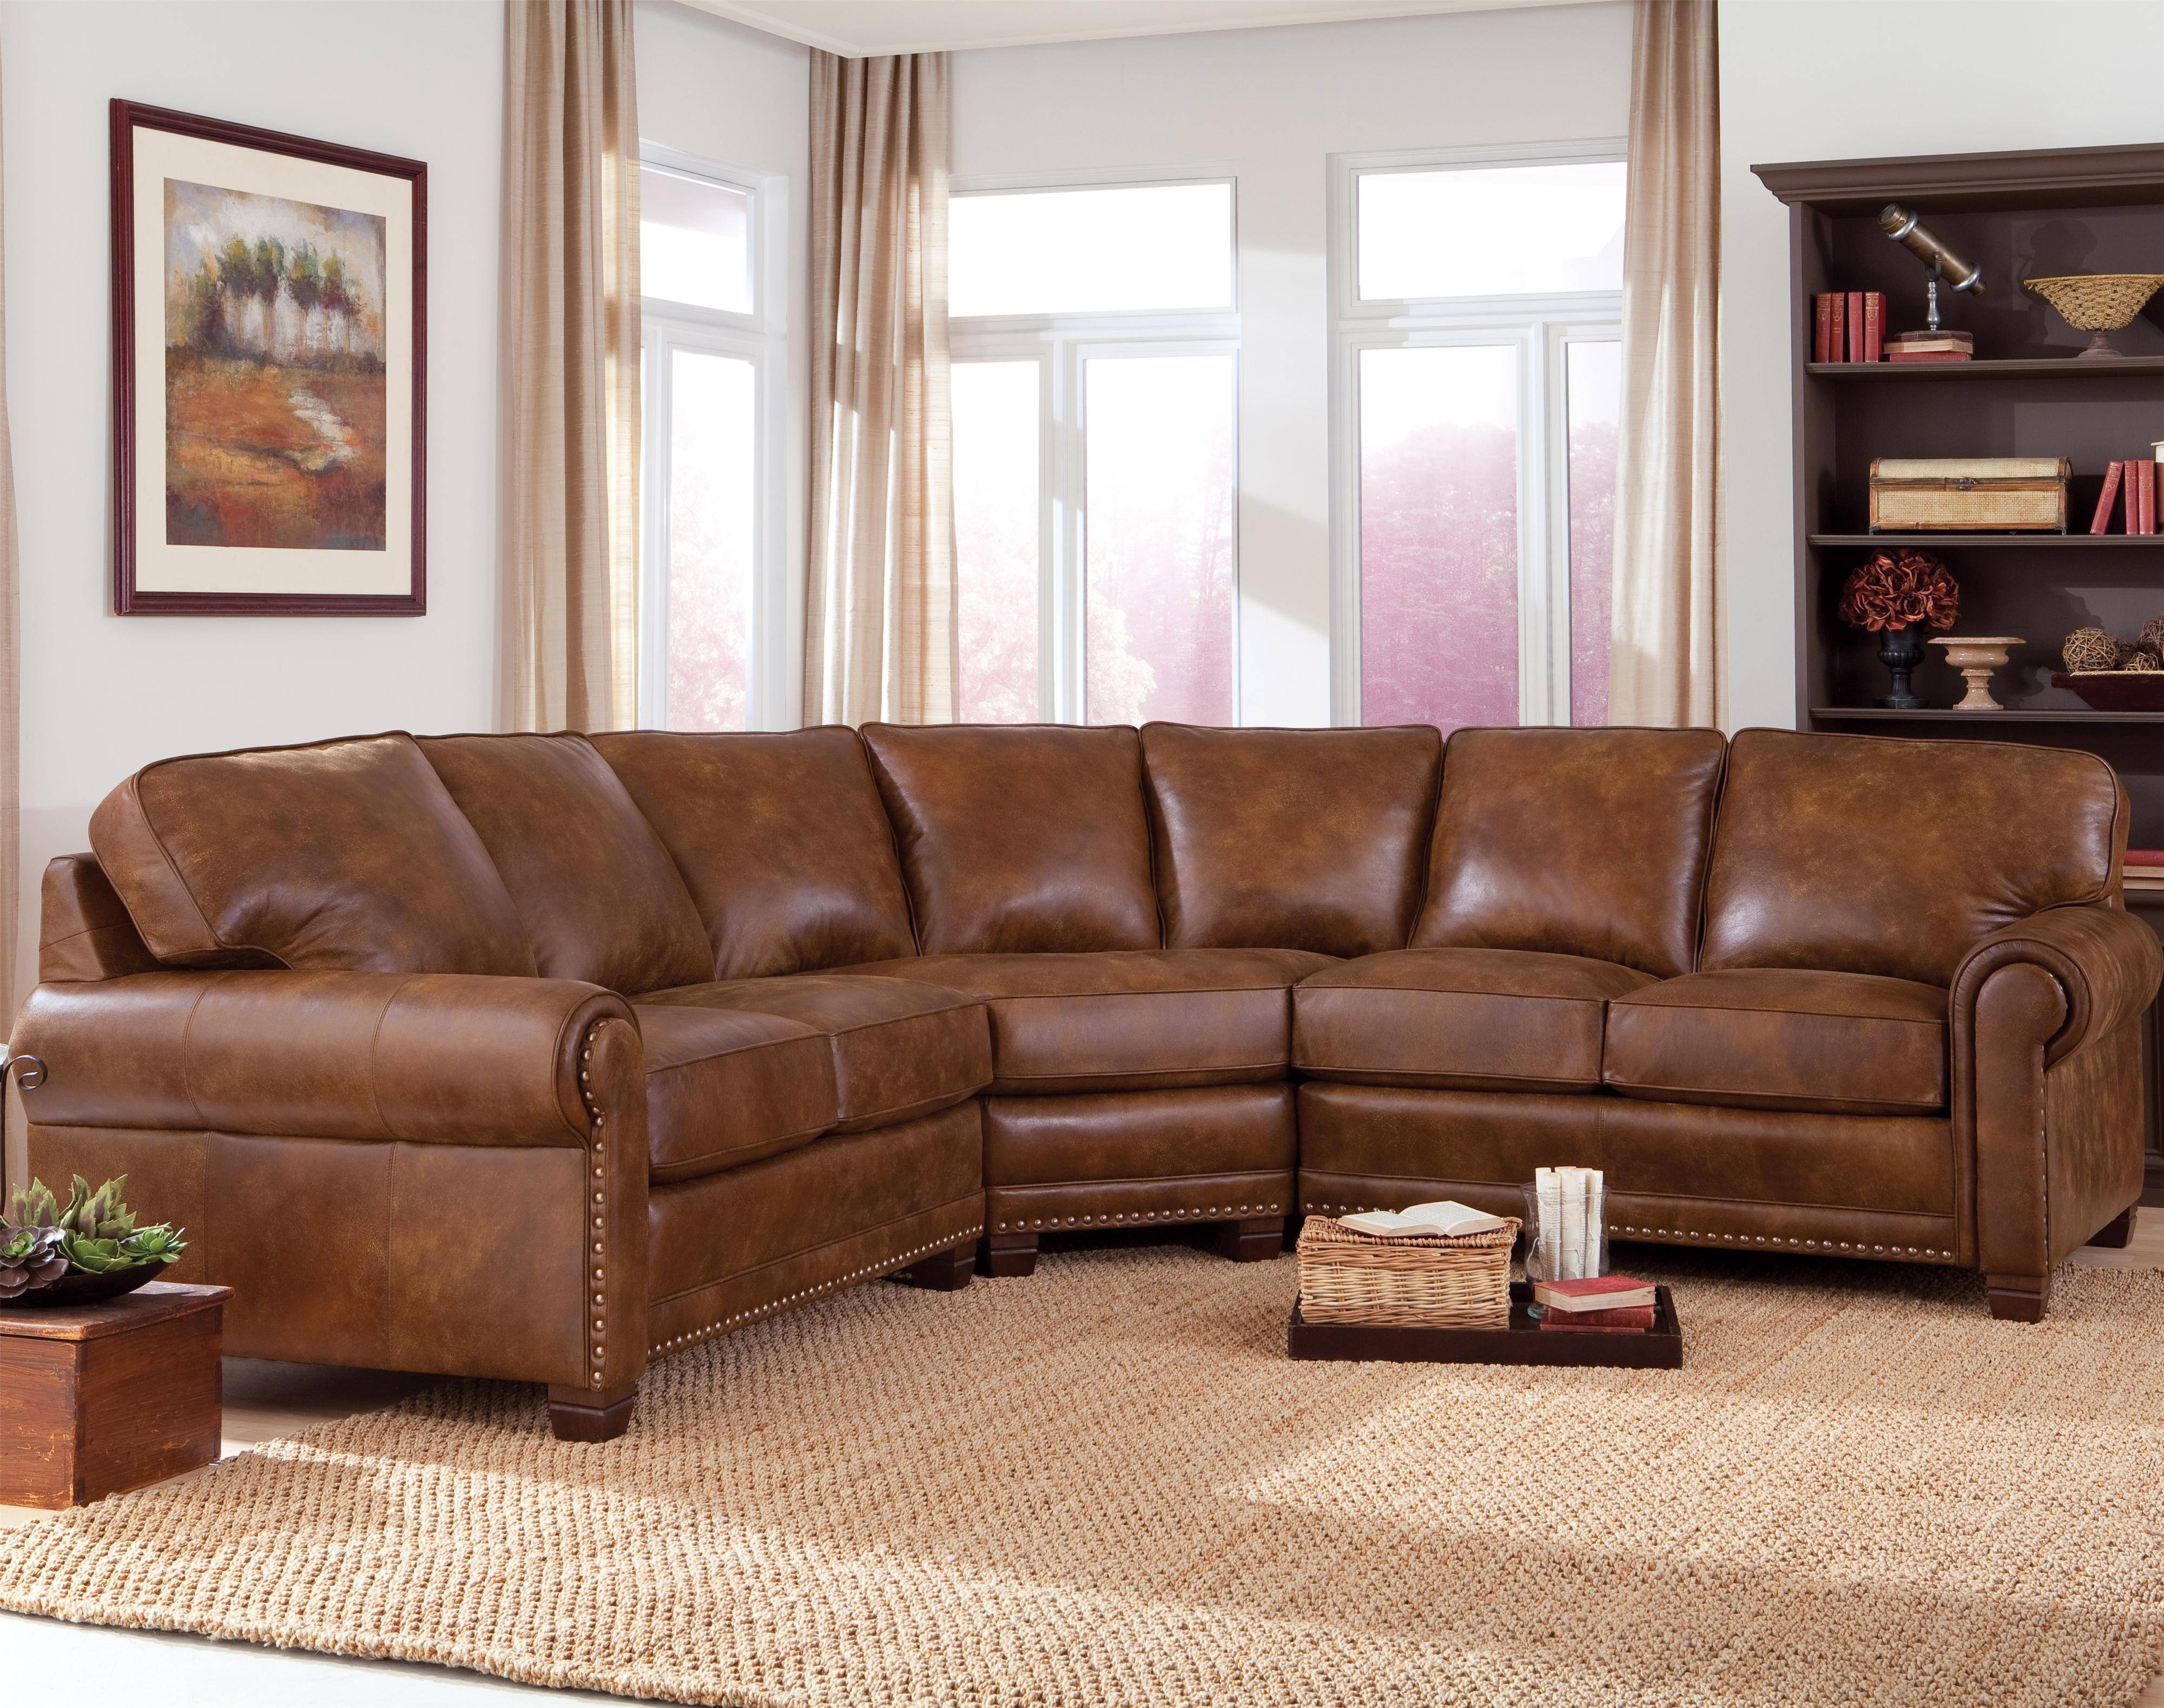 Traditional 3-Piece Sectional Sofa With Nailhead Trimsmith within Traditional Sectional Sofas (Image 18 of 25)